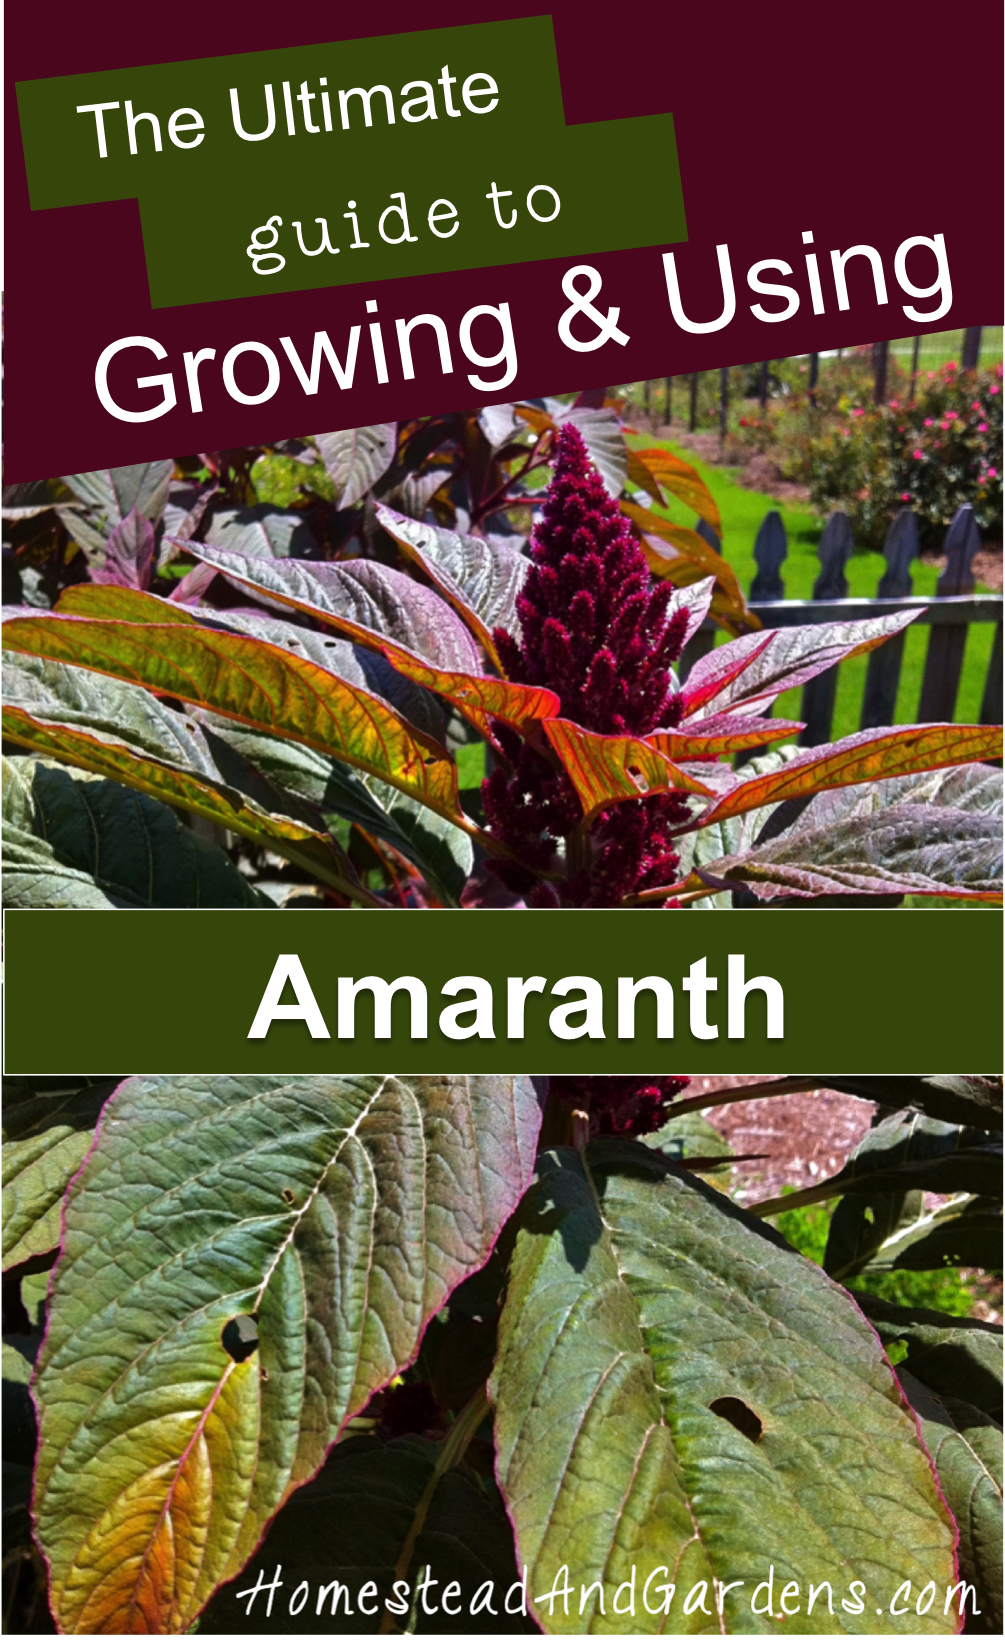 The ultimate guide to growing and using amaranth (a gluten-free pseudograin/pseudocereal related to Quinoa); Amaranth recipes; How to grow amaranth; Different kinds of amaranth (Amaranthus hypochondriacus, Amaranthus caudatus, Amaranthus cruentus.)